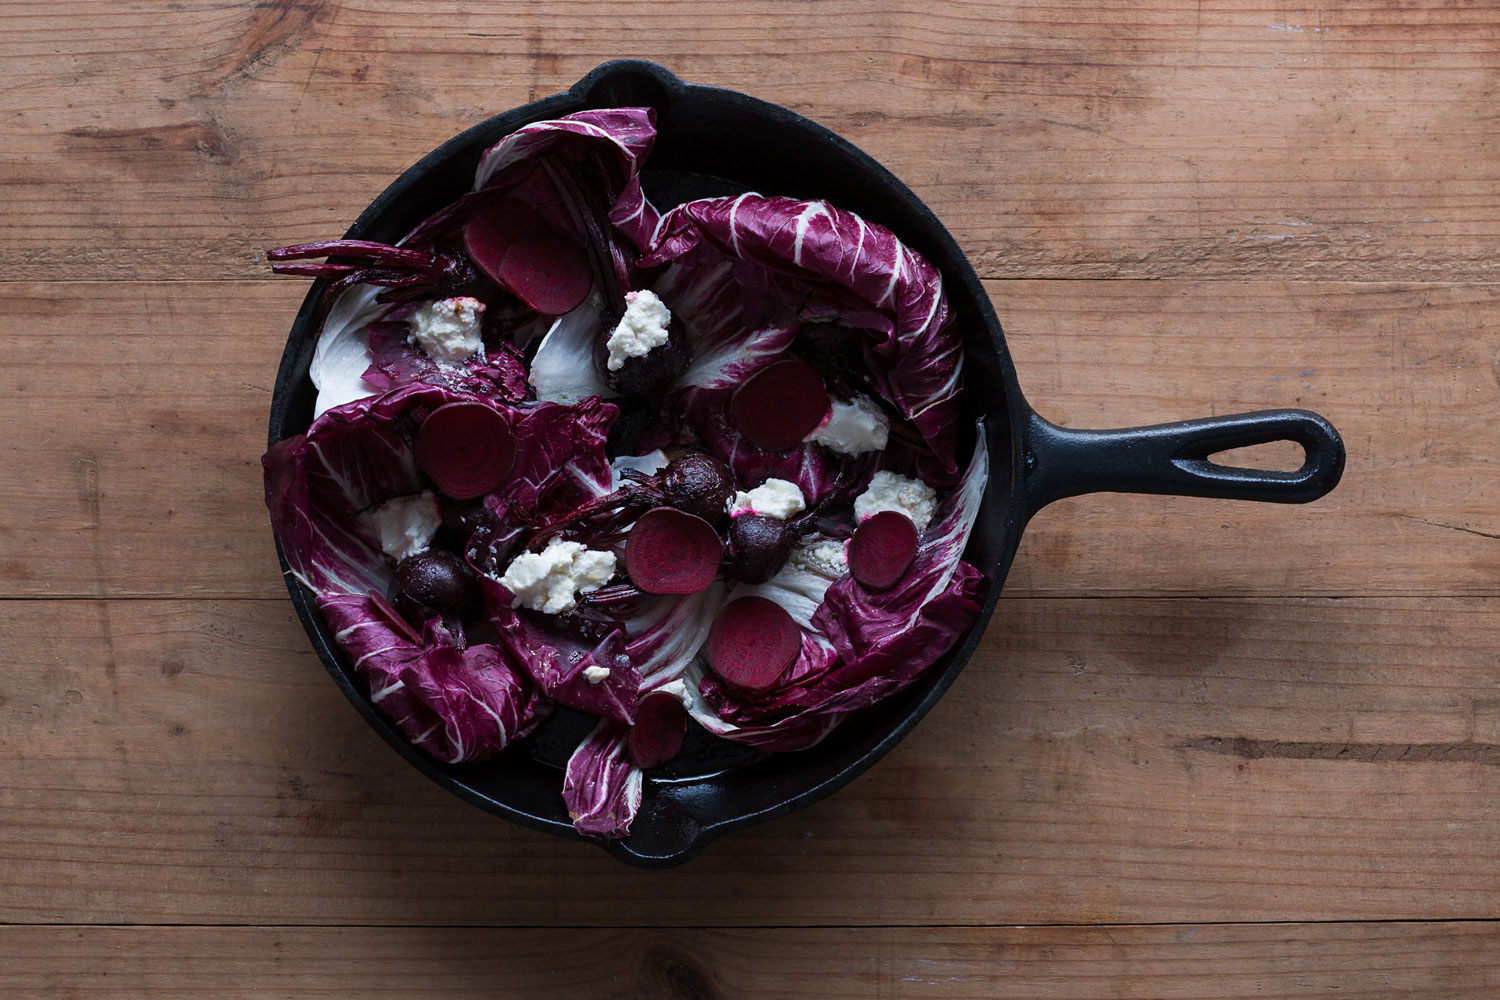 photograph-of-pot-and-pan-culinary-tailoring-beetroots-and-radicchio-taken-by-sarah-anderson-photography